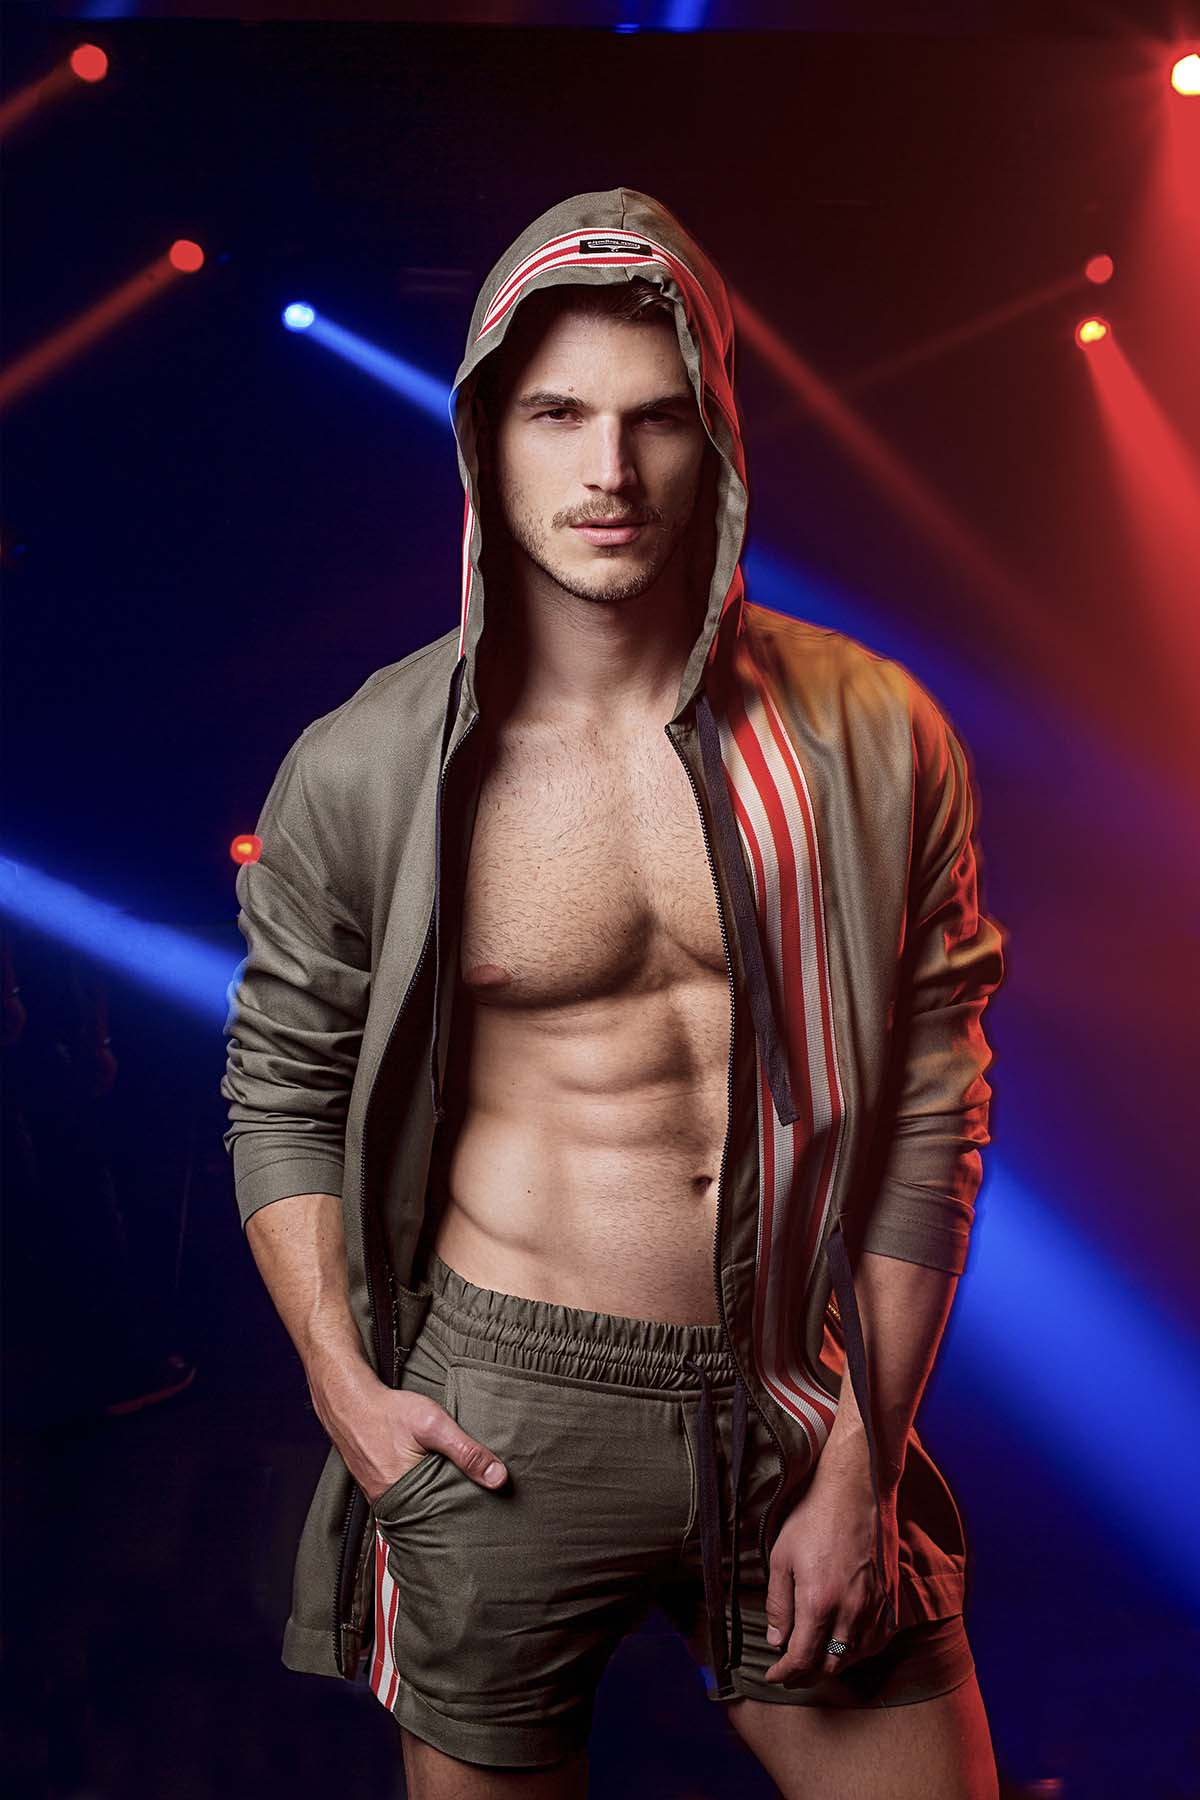 Alex Trevelin and Paulo Tardivo by Ronaldo Gutierrez for Anjo da Guarda for Brazilian Male Model